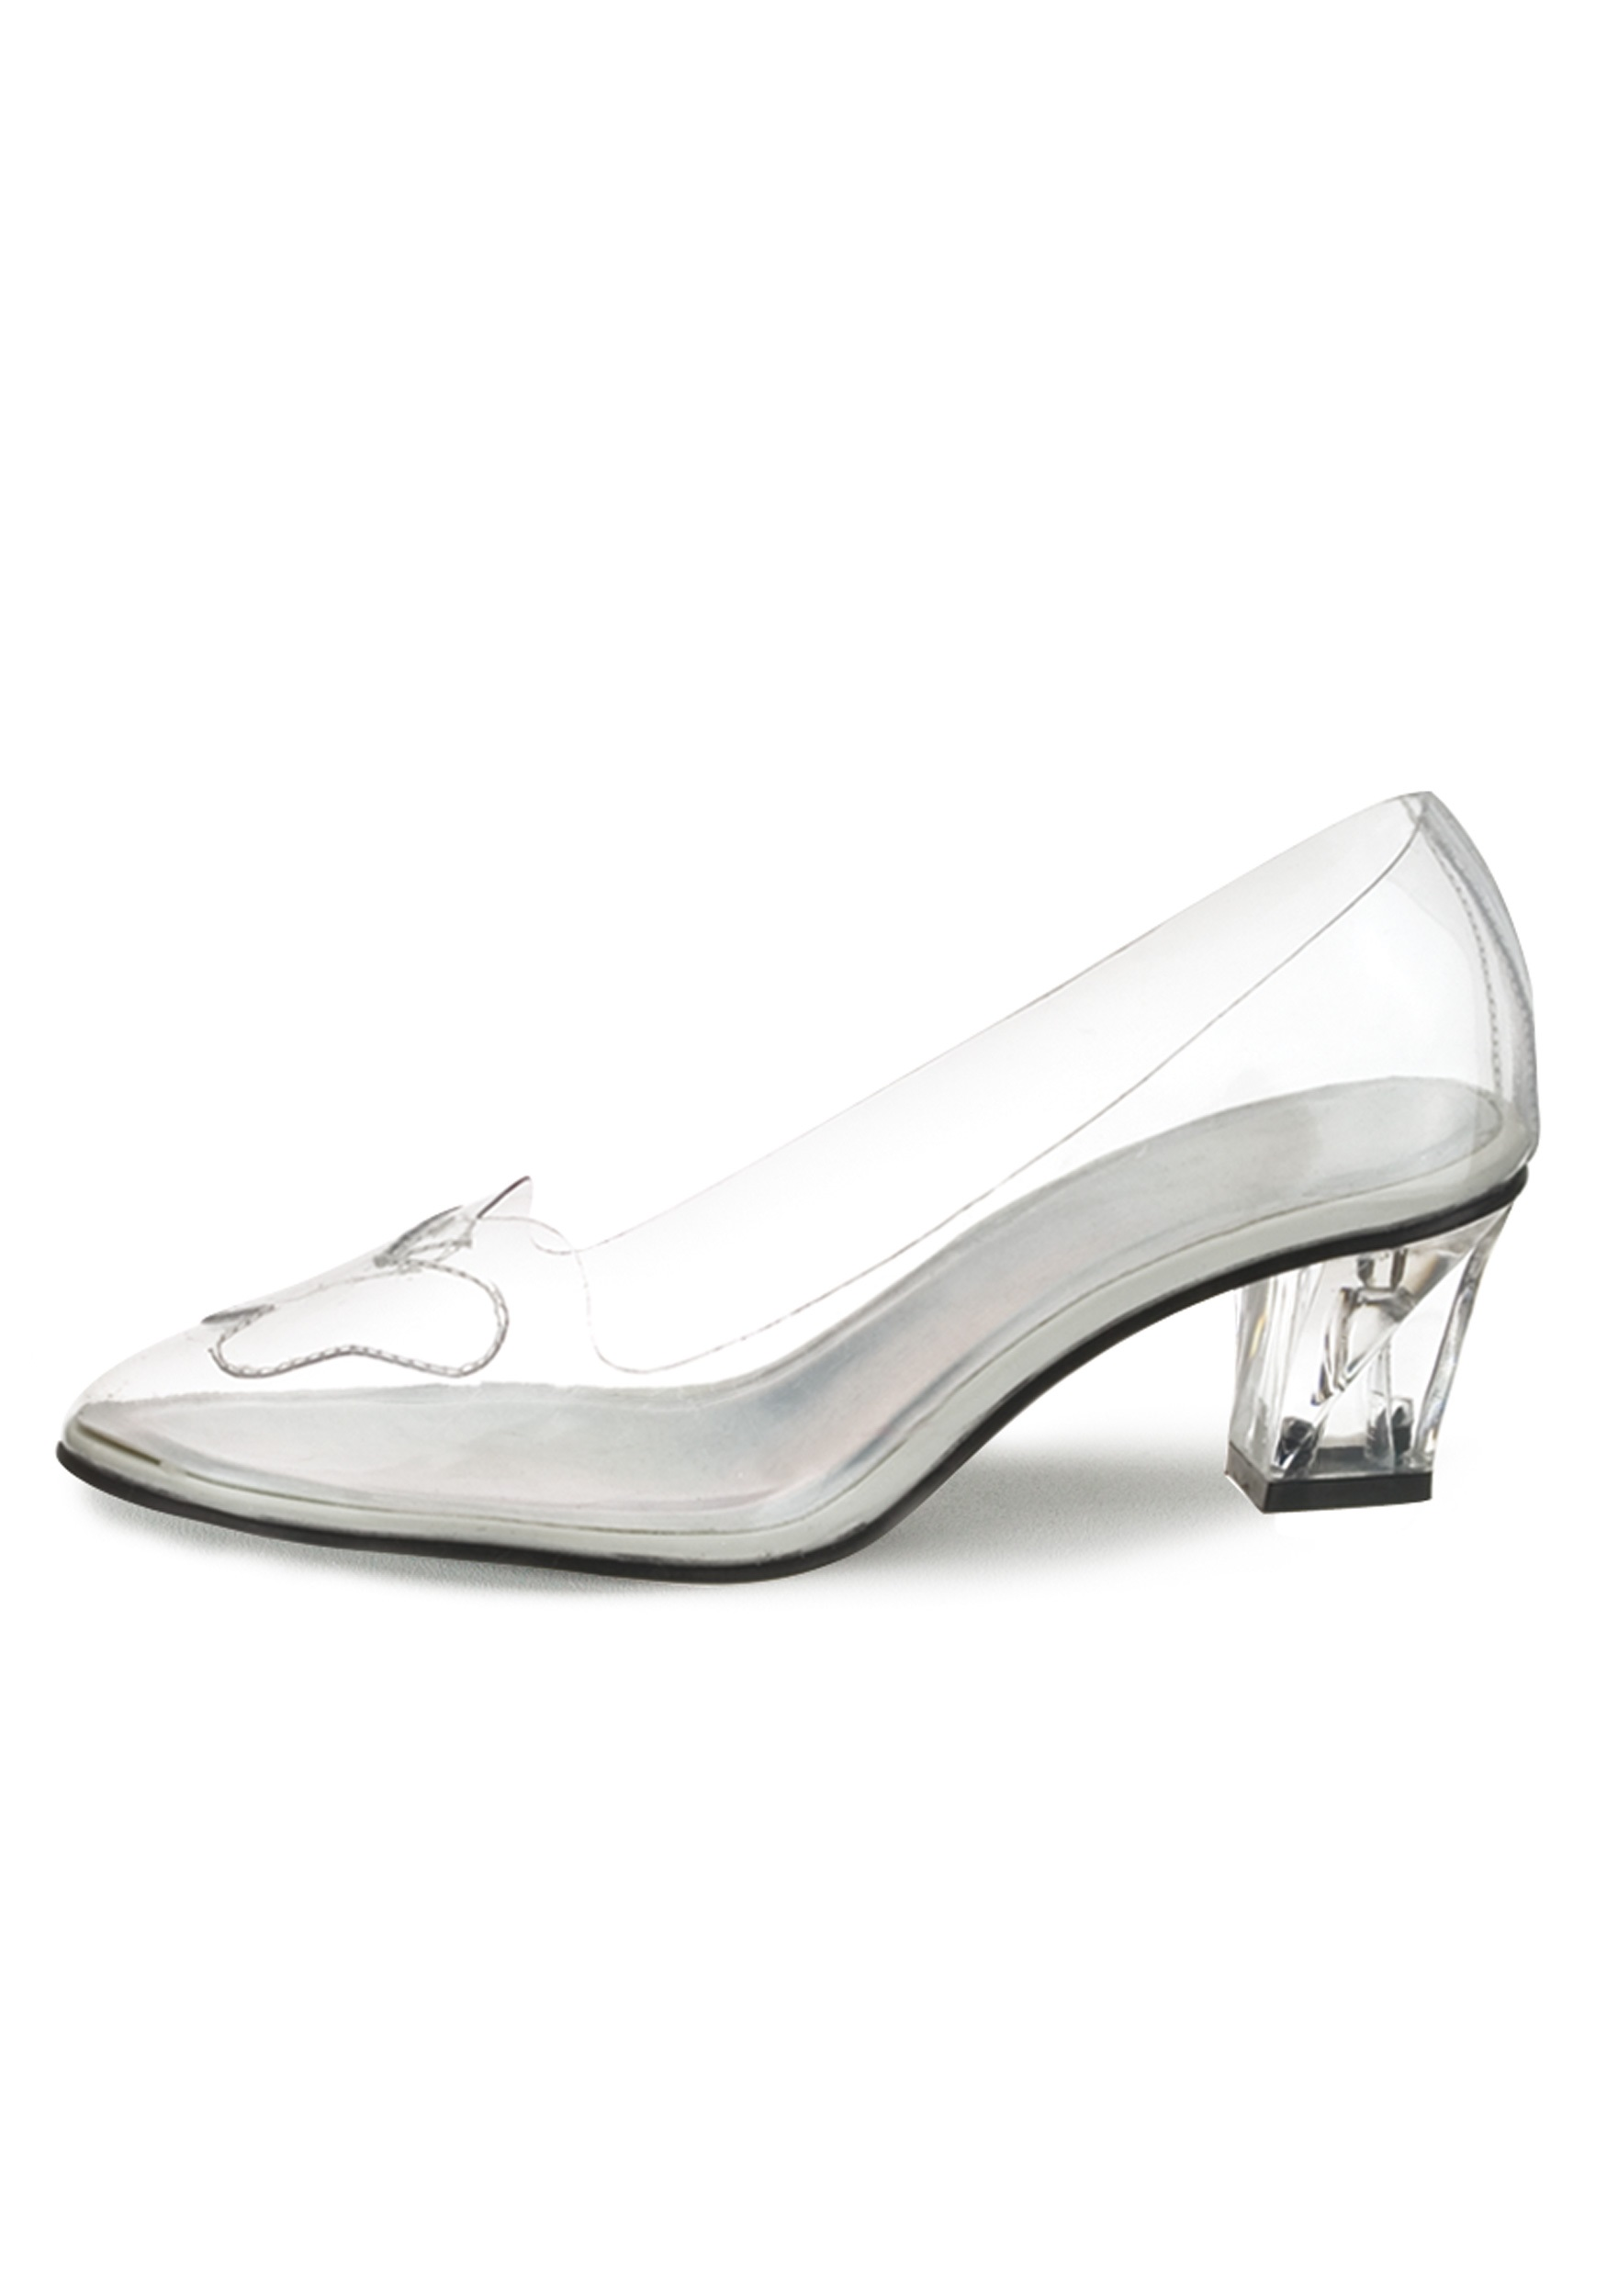 womens clear shoes